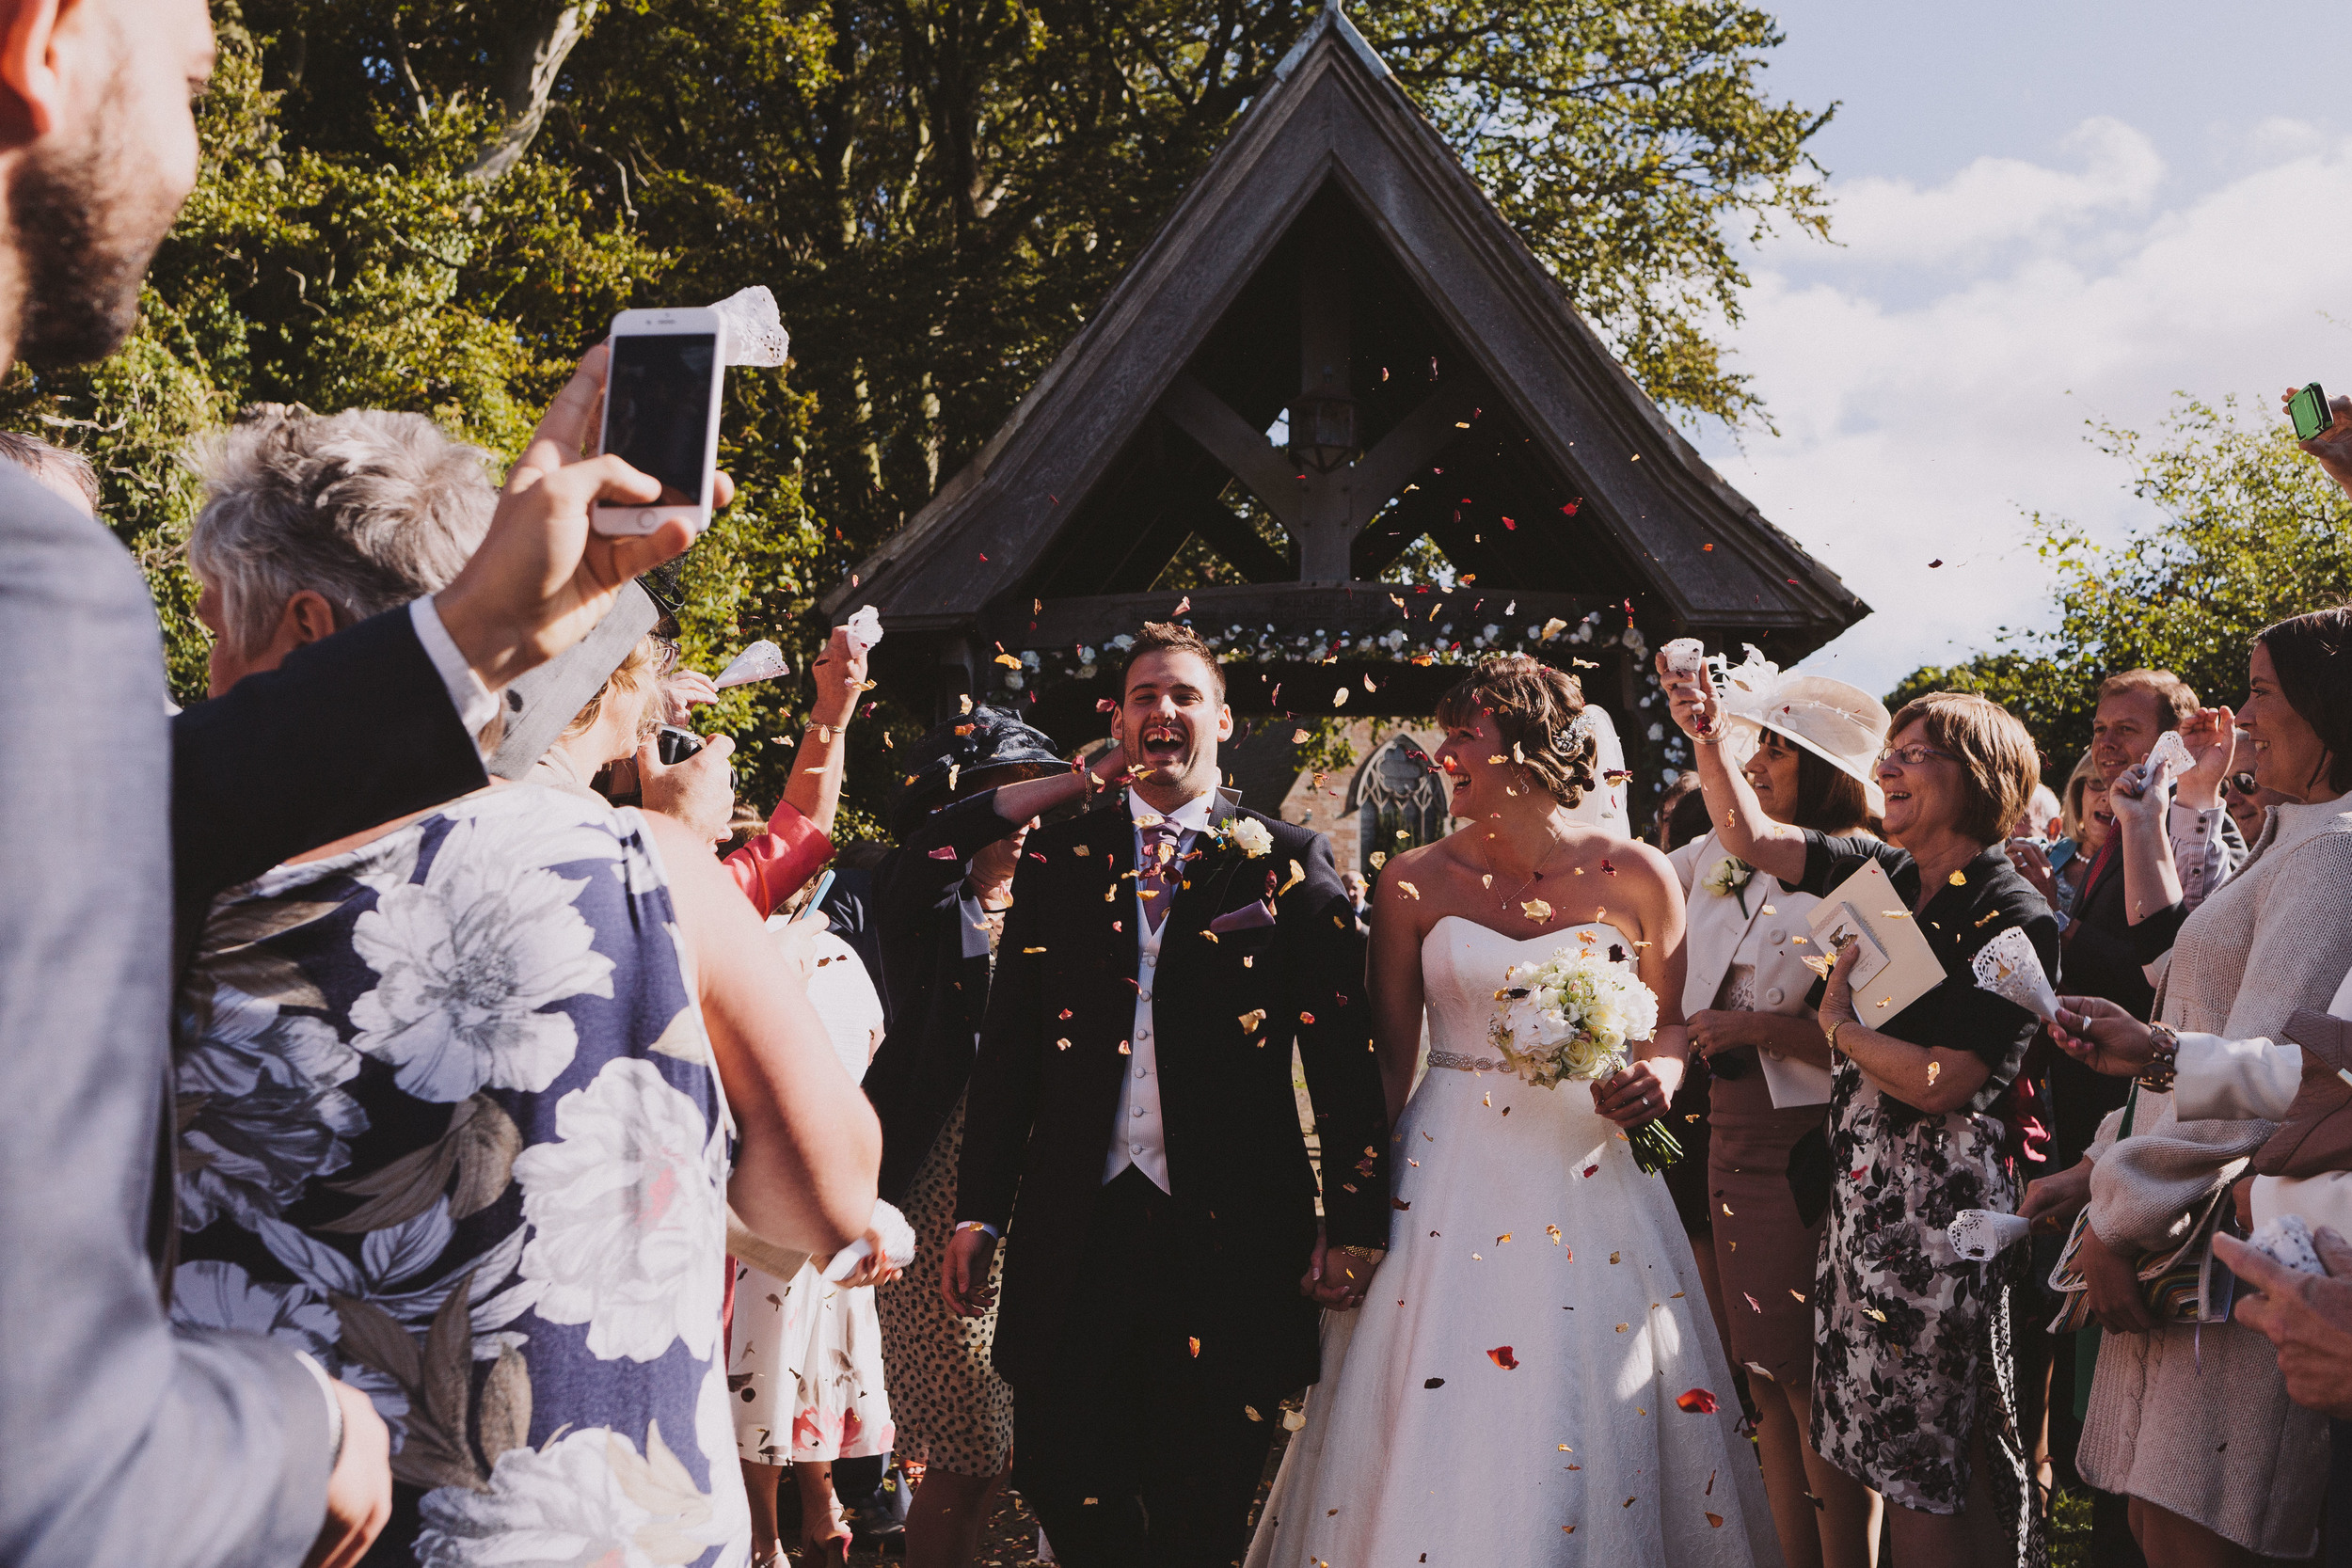 Sarah & Brys' wedding at Ellingham Hall has been featured in Brides Up North